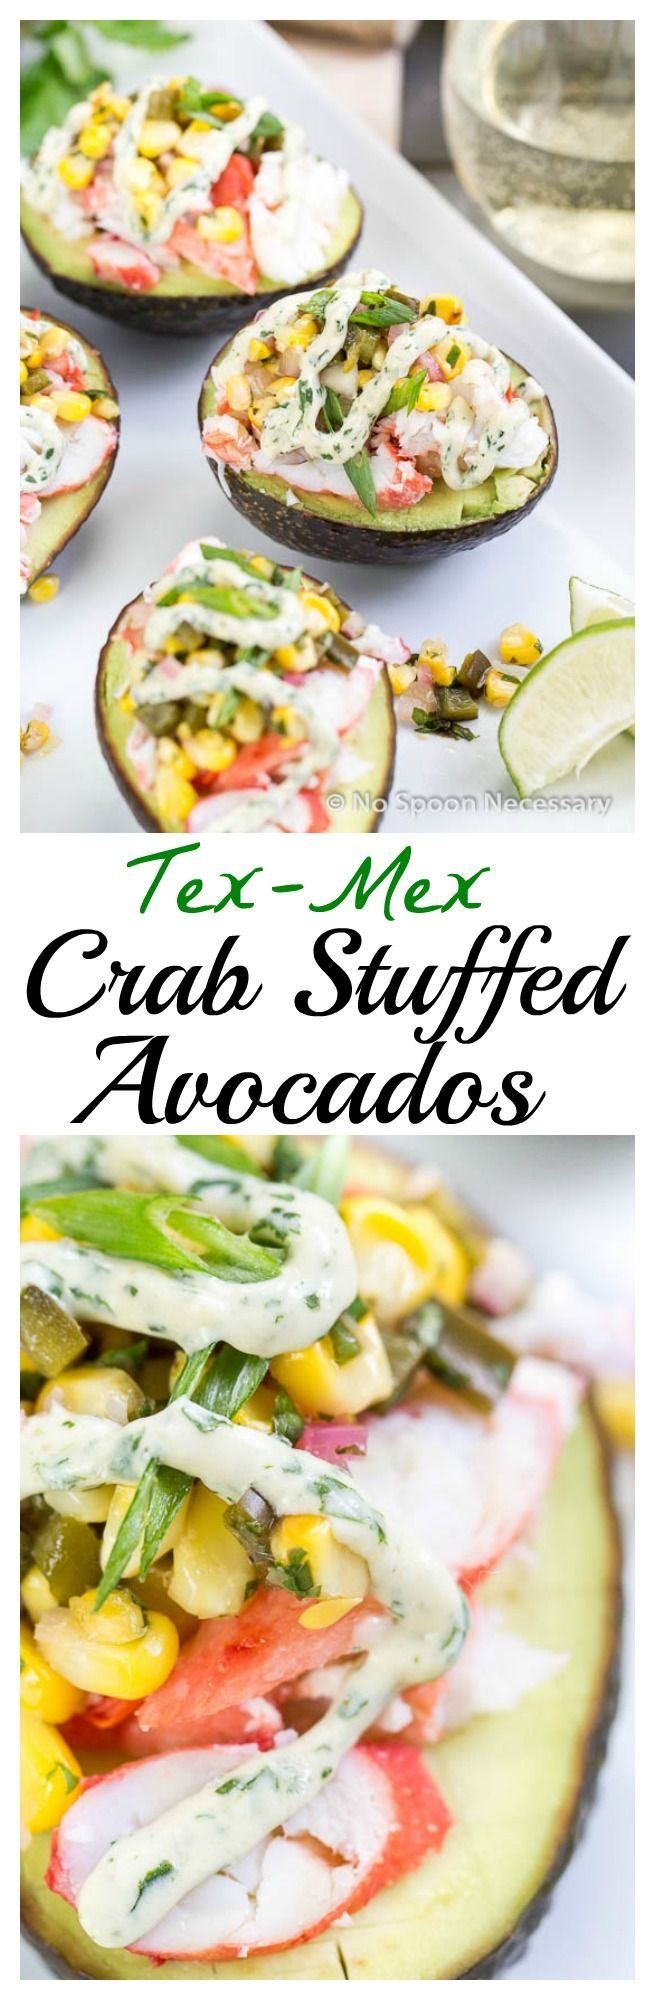 Tex Mex King Crab & Corn Stuffed Avocados with Lime-Cilantro-Sriracha Crema